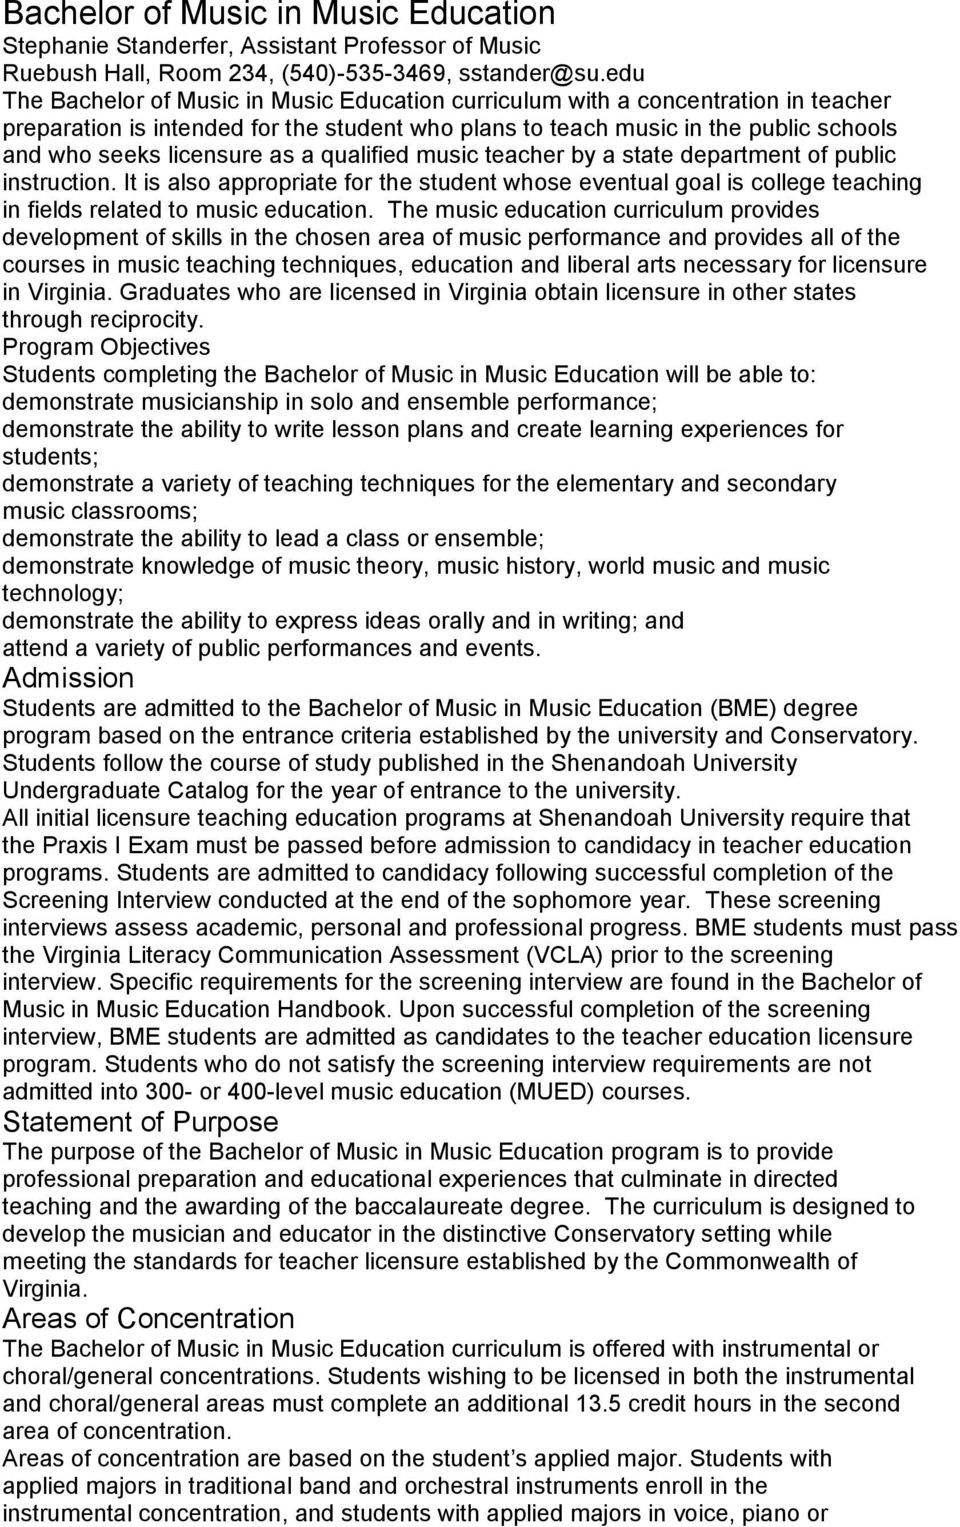 qualified music teacher by a state department of public instruction. It is also appropriate f the student whose eventual goal is college teaching in fields related to music education.